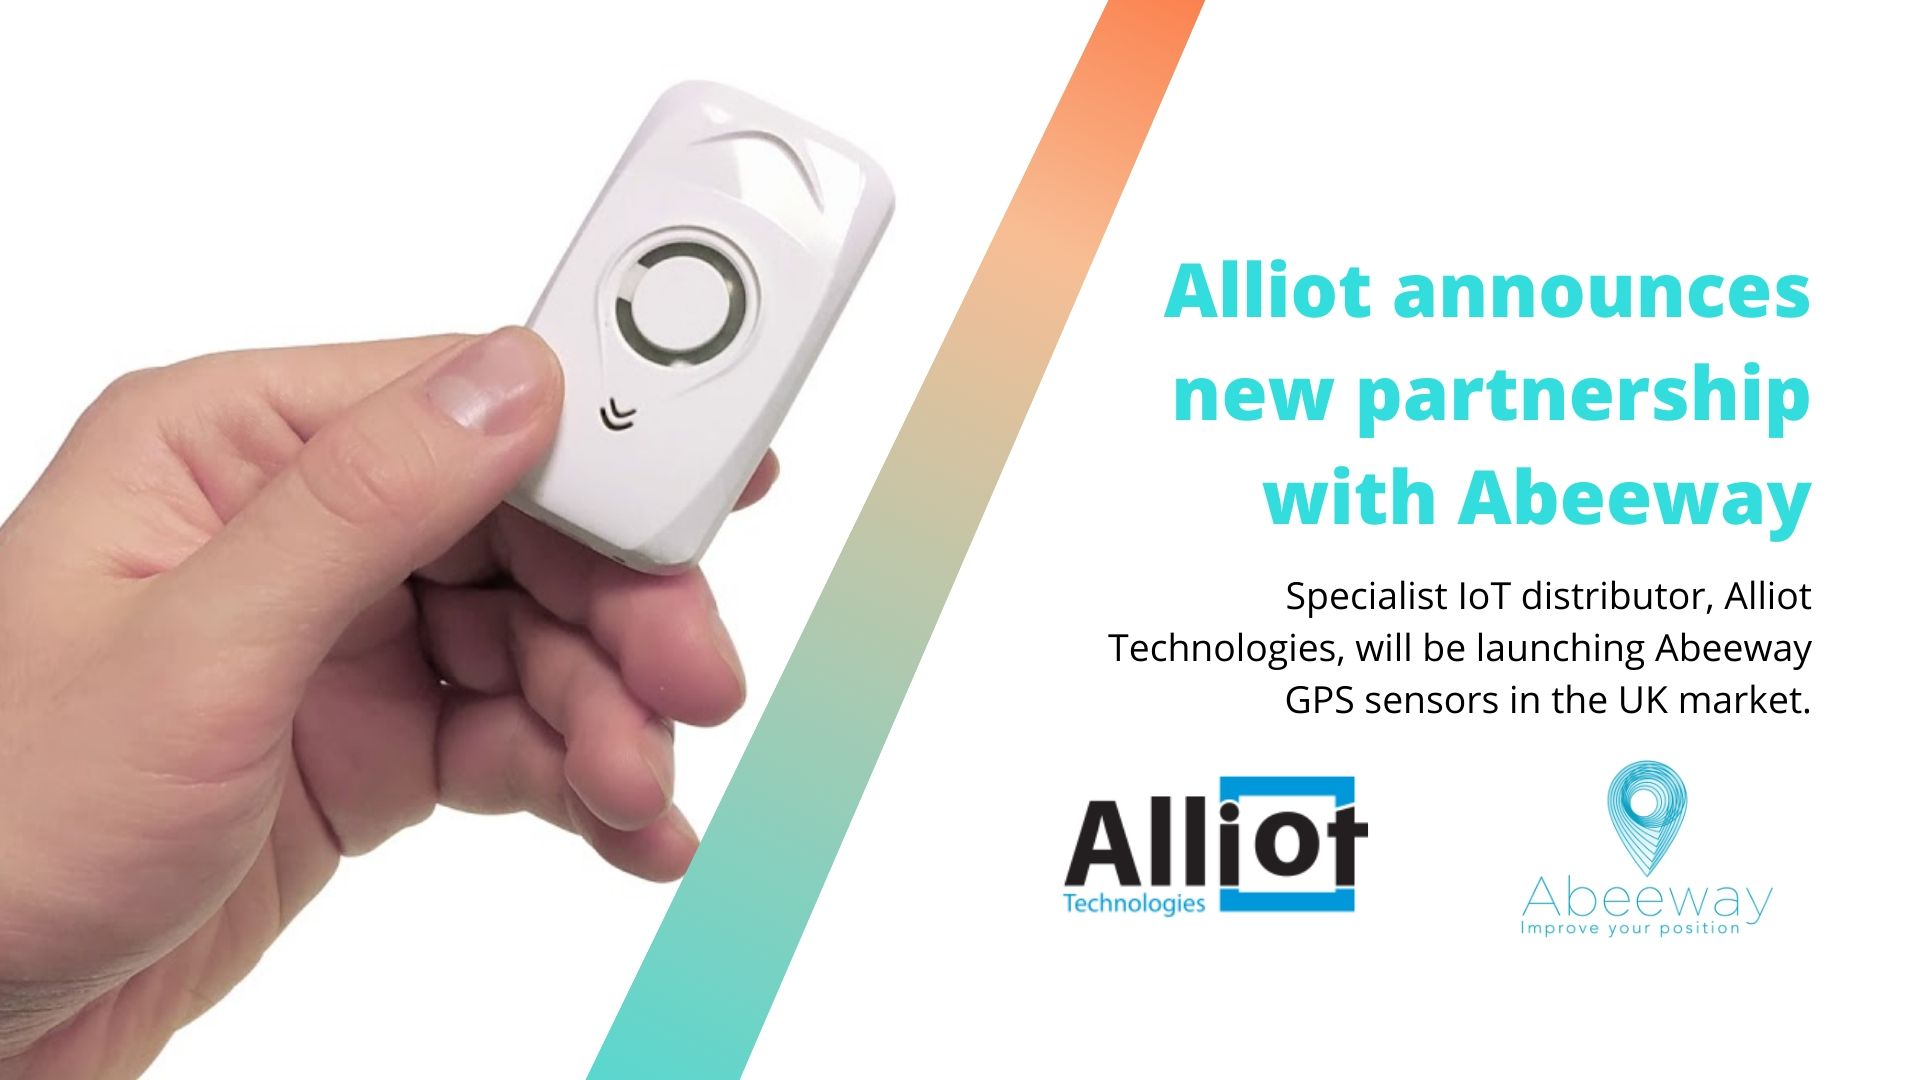 Alliot announce new partnership with Abeeway